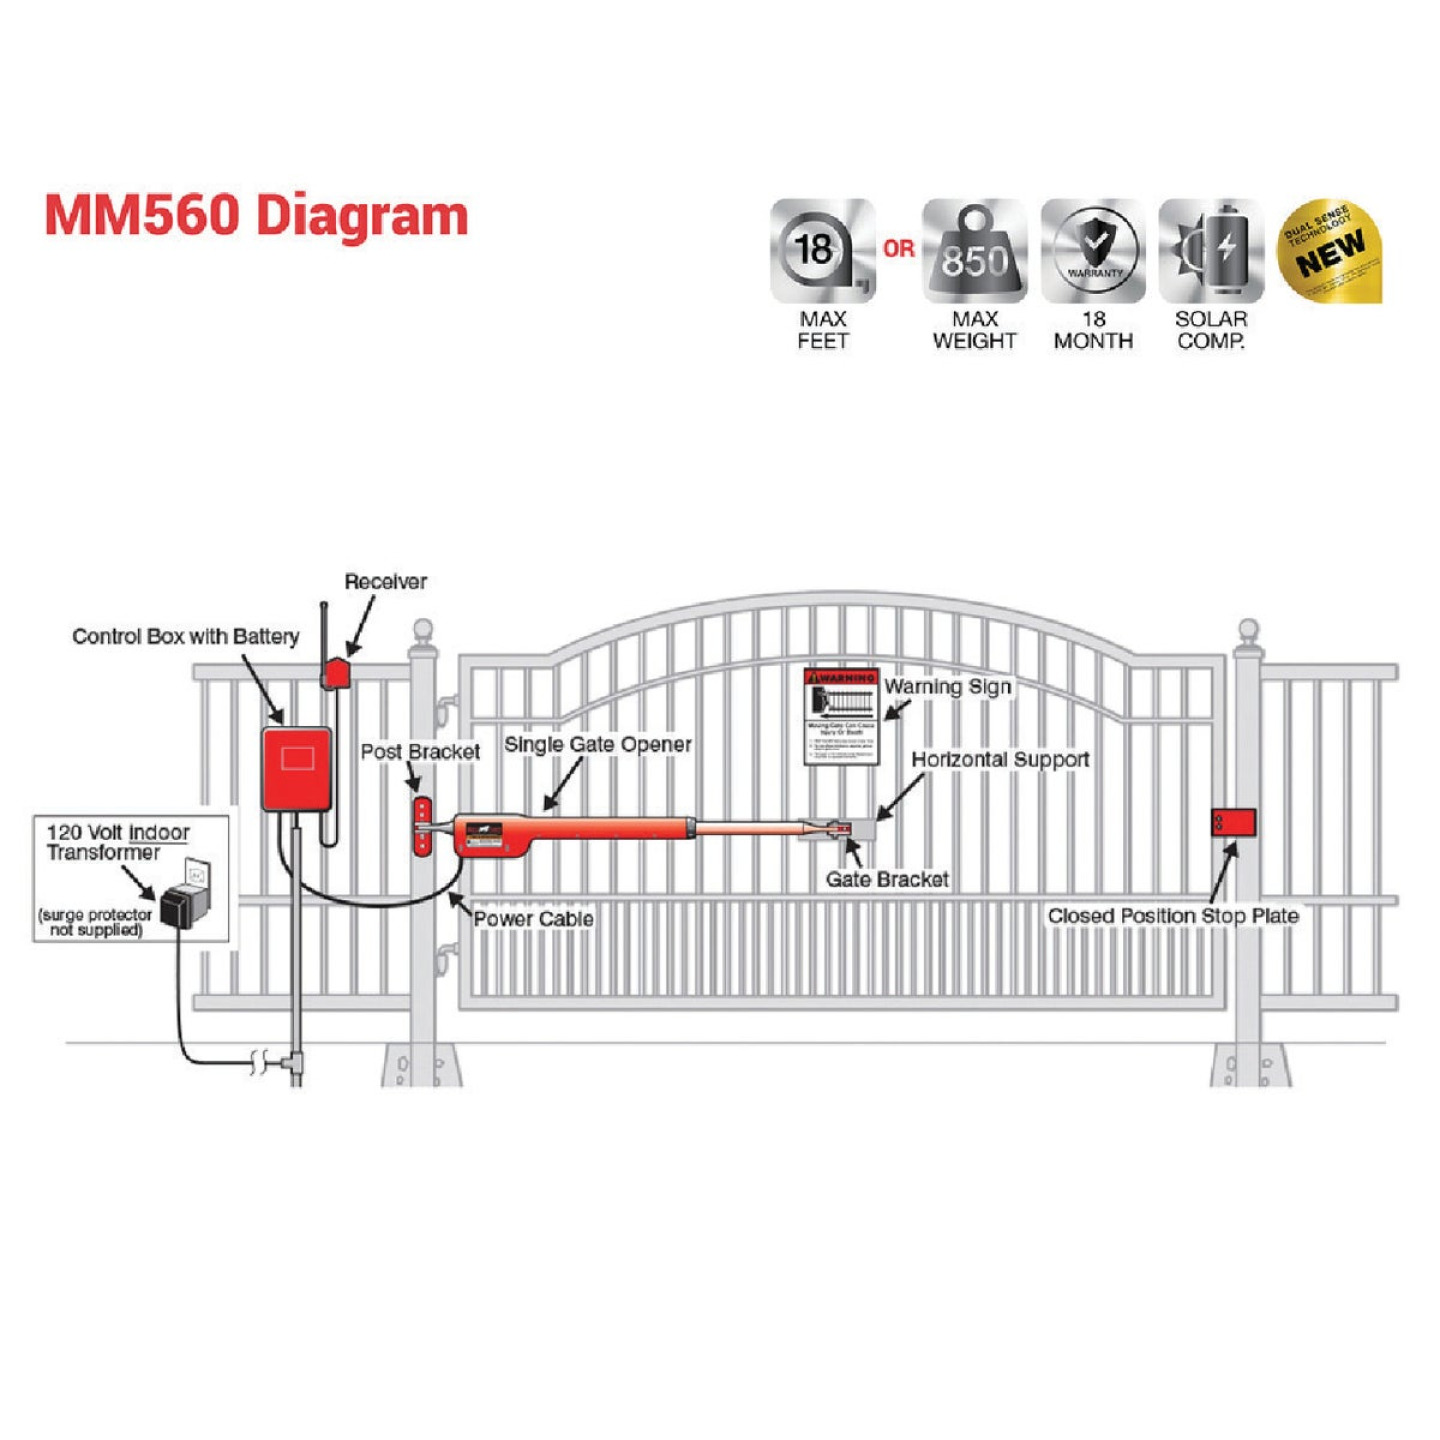 Mighty Mule MM71W 18 Ft. 850 Lb. Heavy-Duty Single Gate Opener Kit Image 8